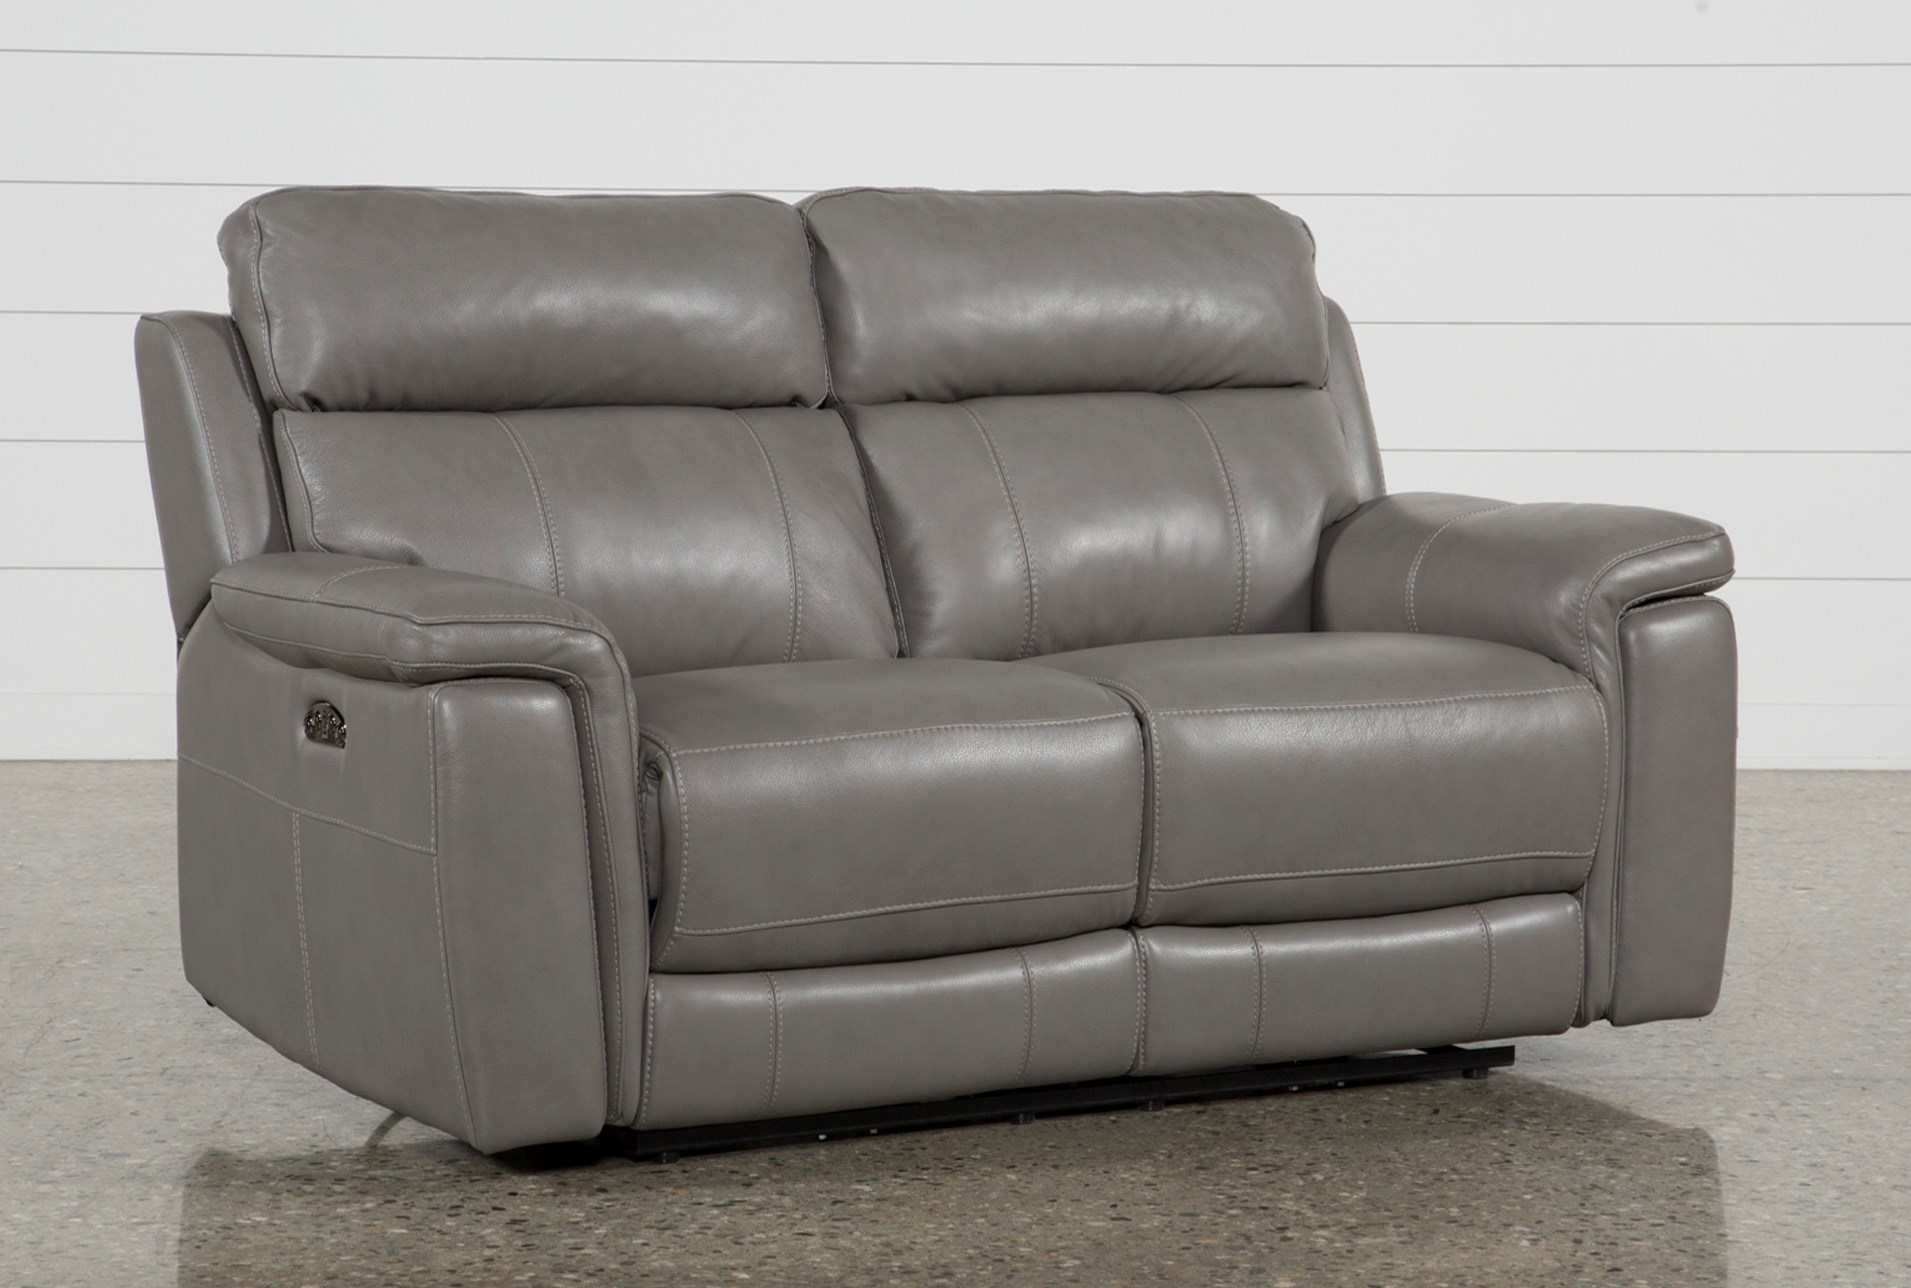 furniture code loveseat leather reclining gray air husky hunter product